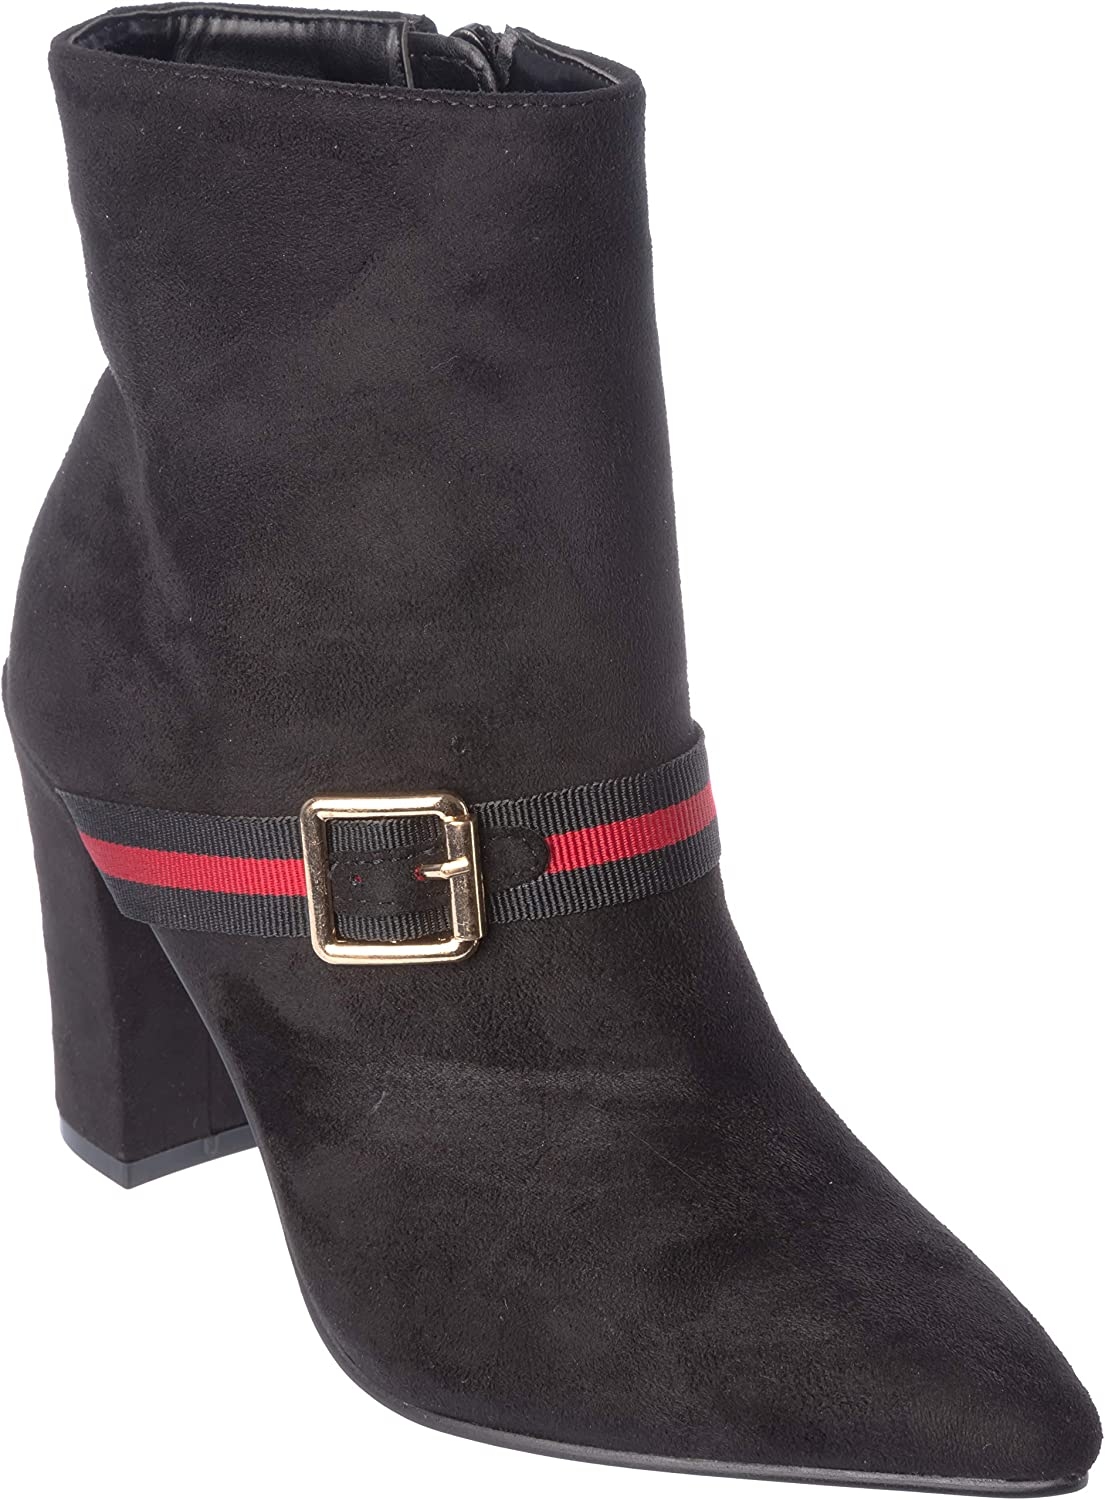 shoes Picker sicilia01 Womens Ankle-Boots Fashion-Booties